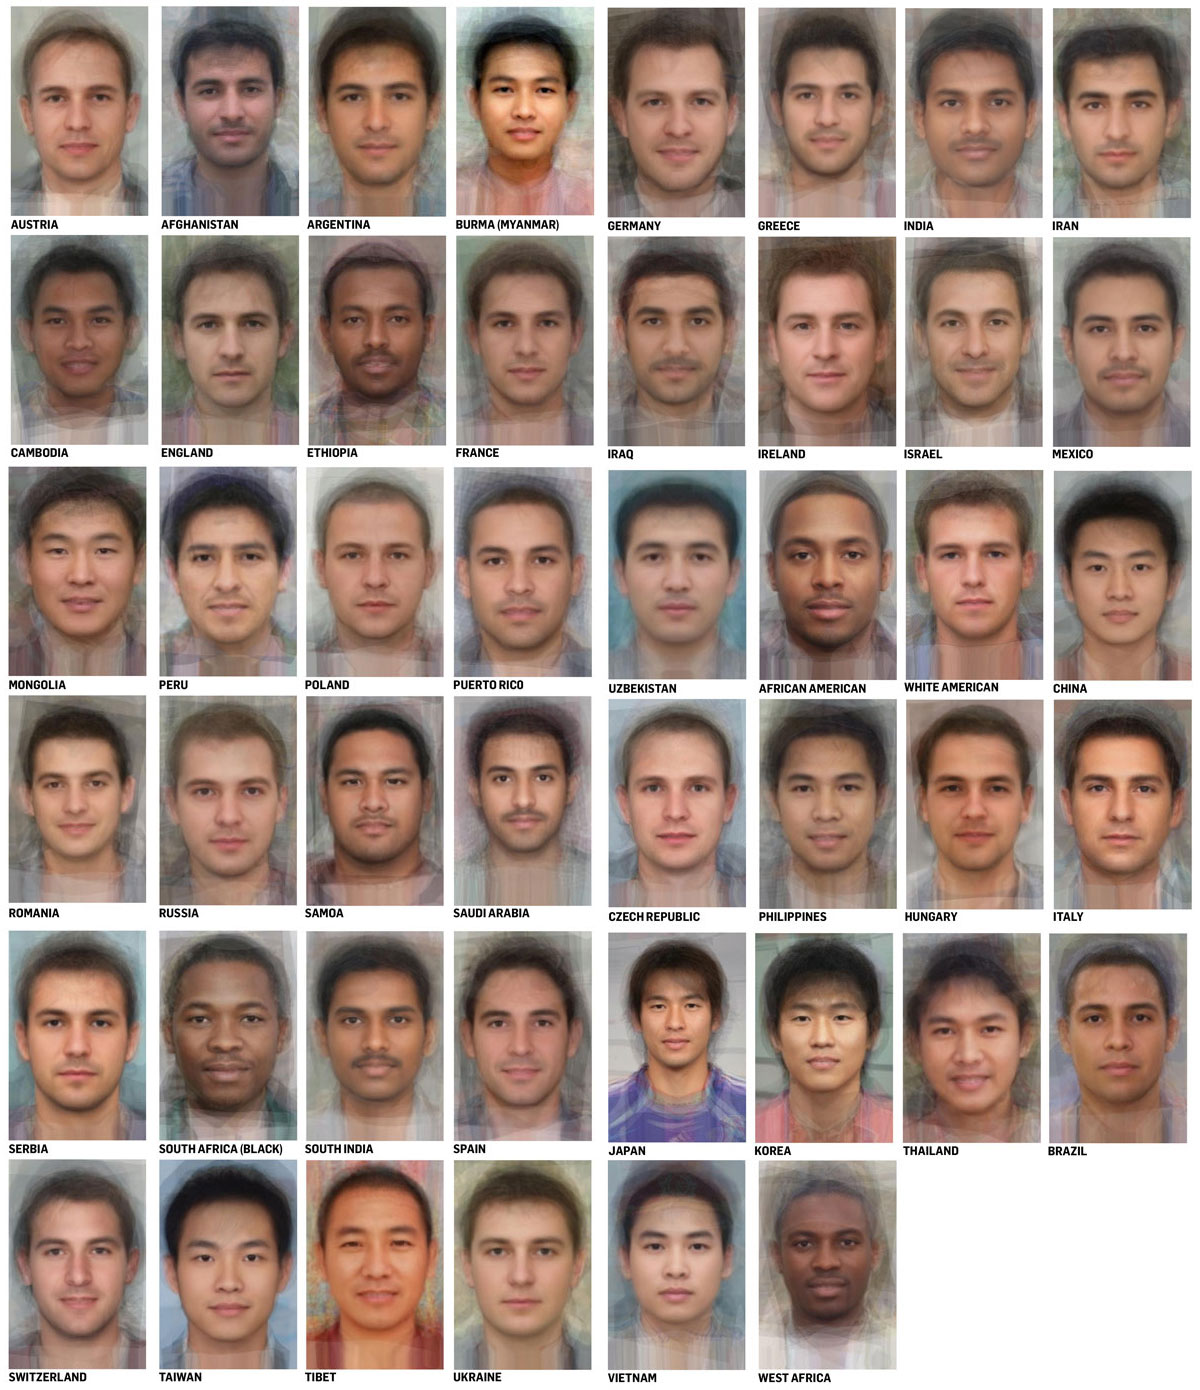 DNA Average Faces of the World